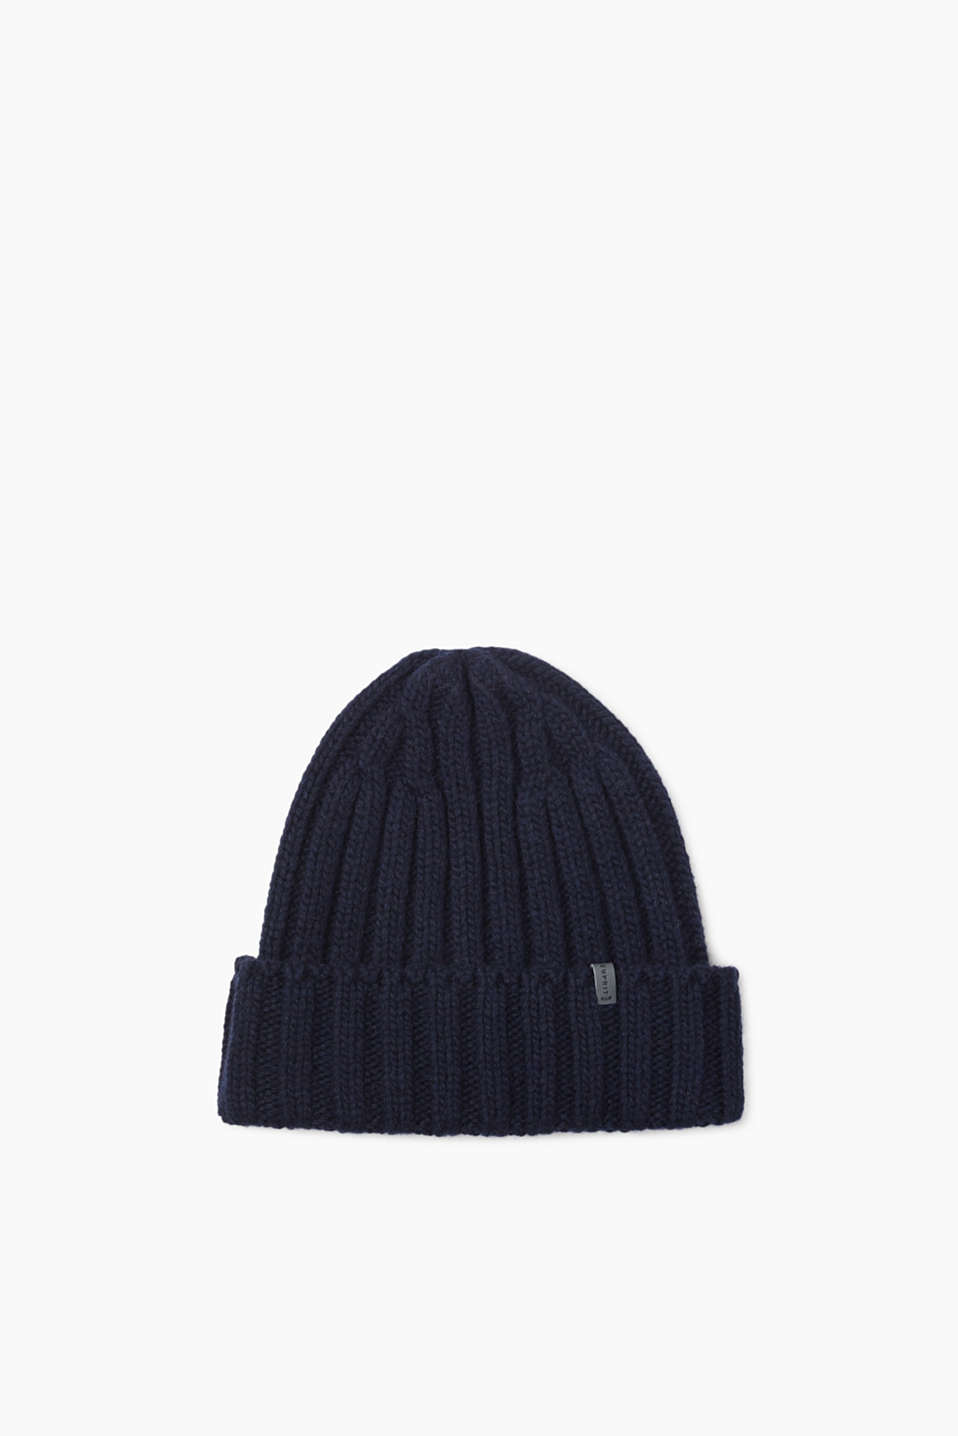 With this warm knit beanie with a percentage of wool, you will be perfectly dressed for any type of weather!